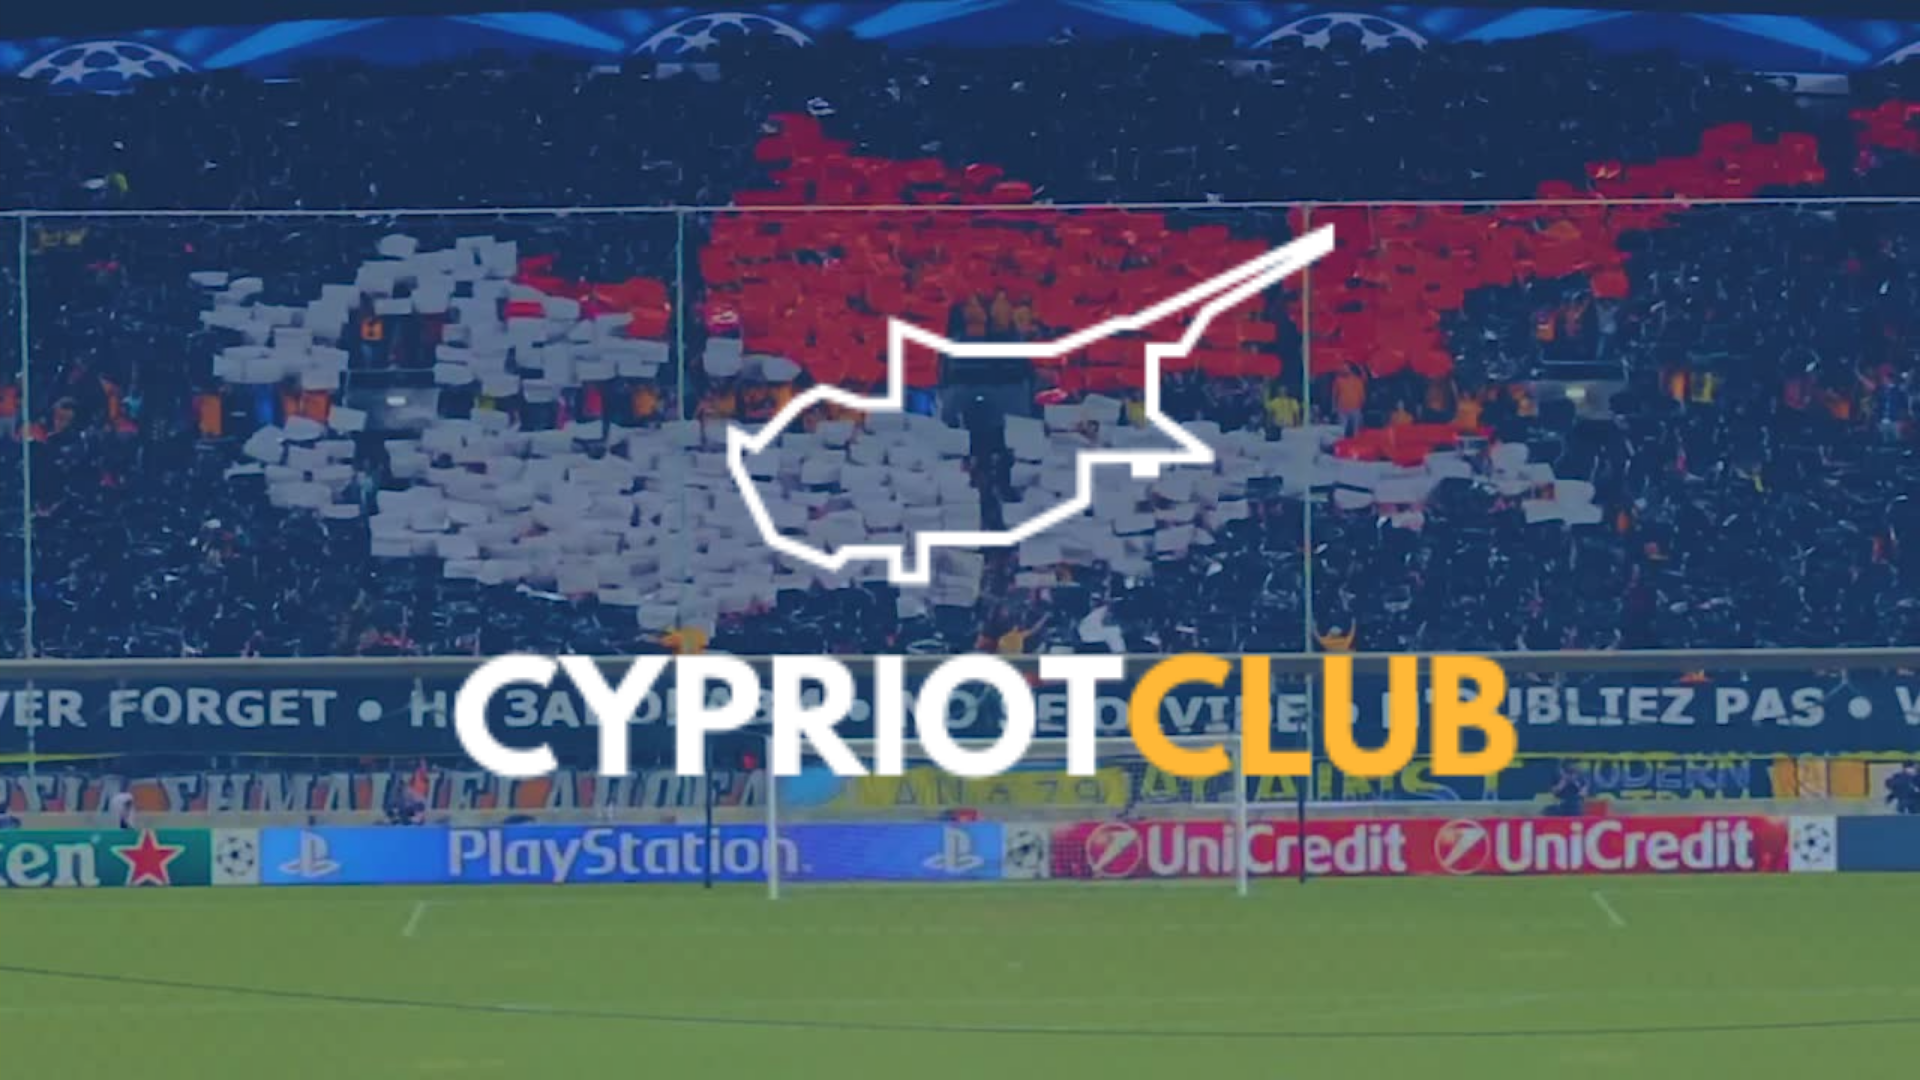 The Cypriot Club